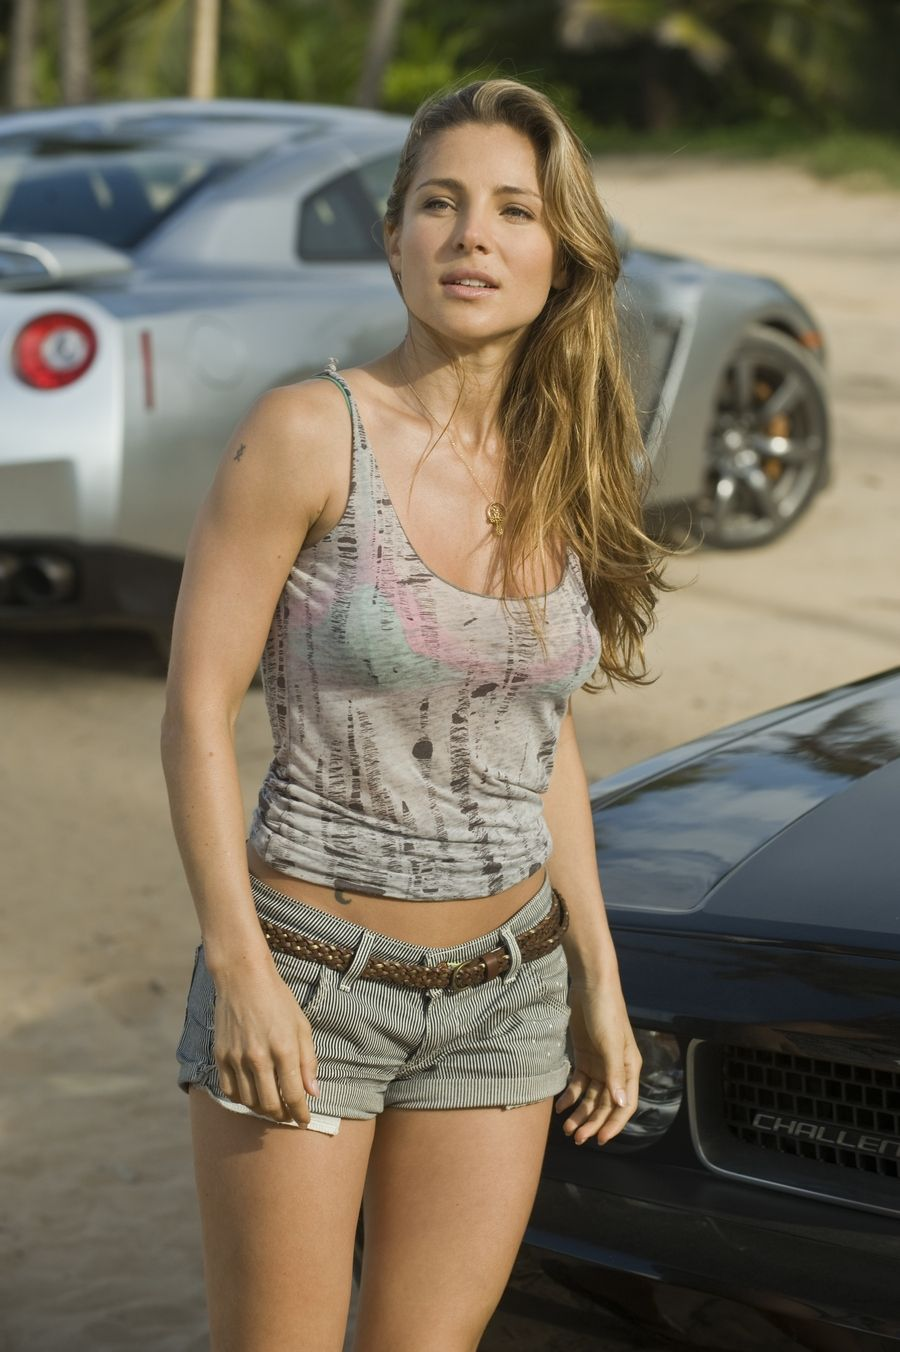 Fast And Furious  Hot Hd Wallpaper Of Elsa Pataky Pataky Elsa